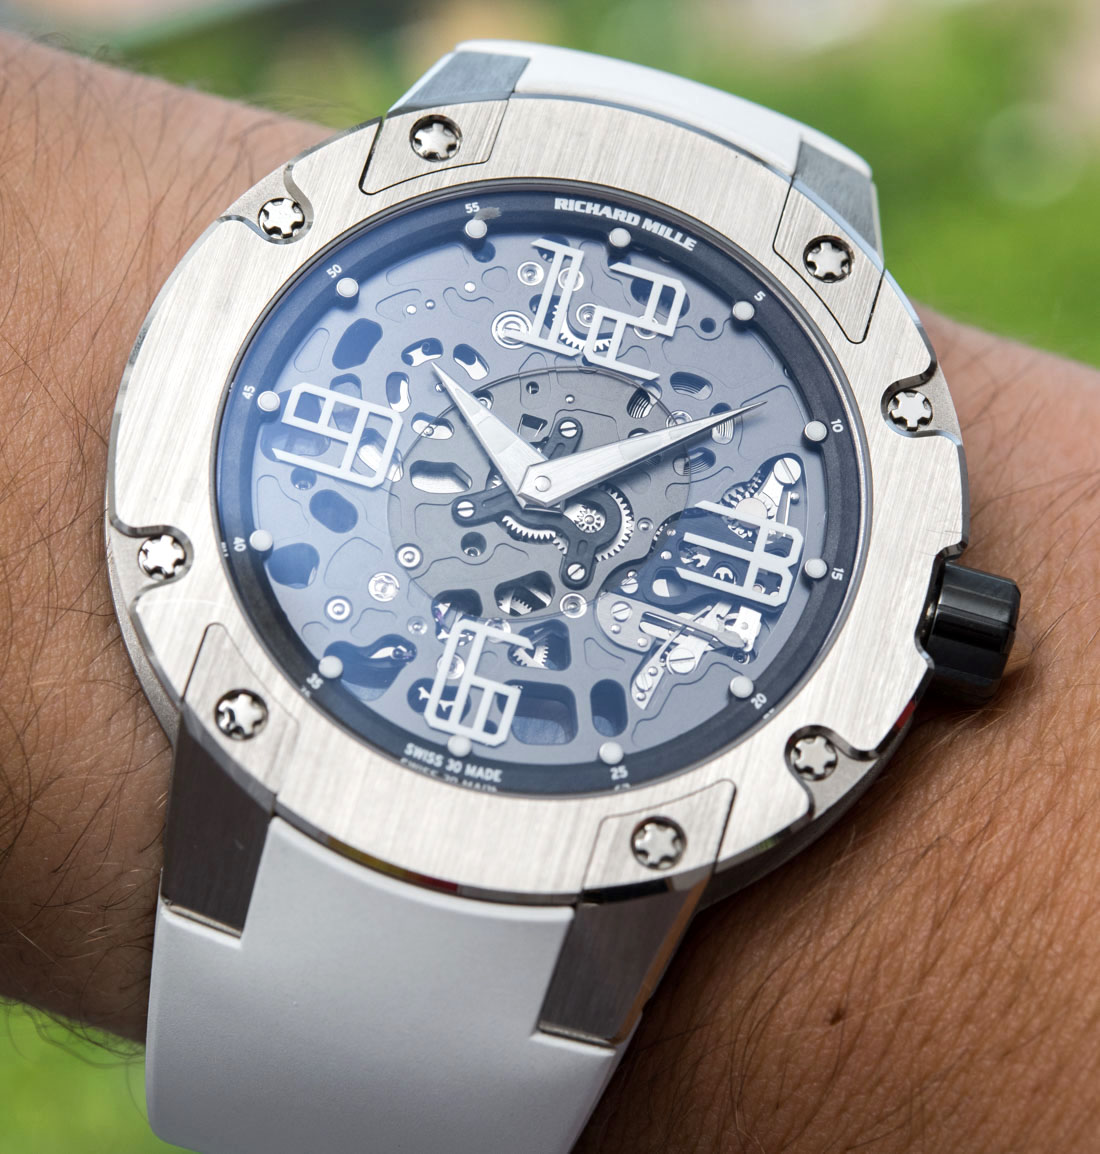 Replica Expensive Richard Mille RM033 In White Gold Watch Review